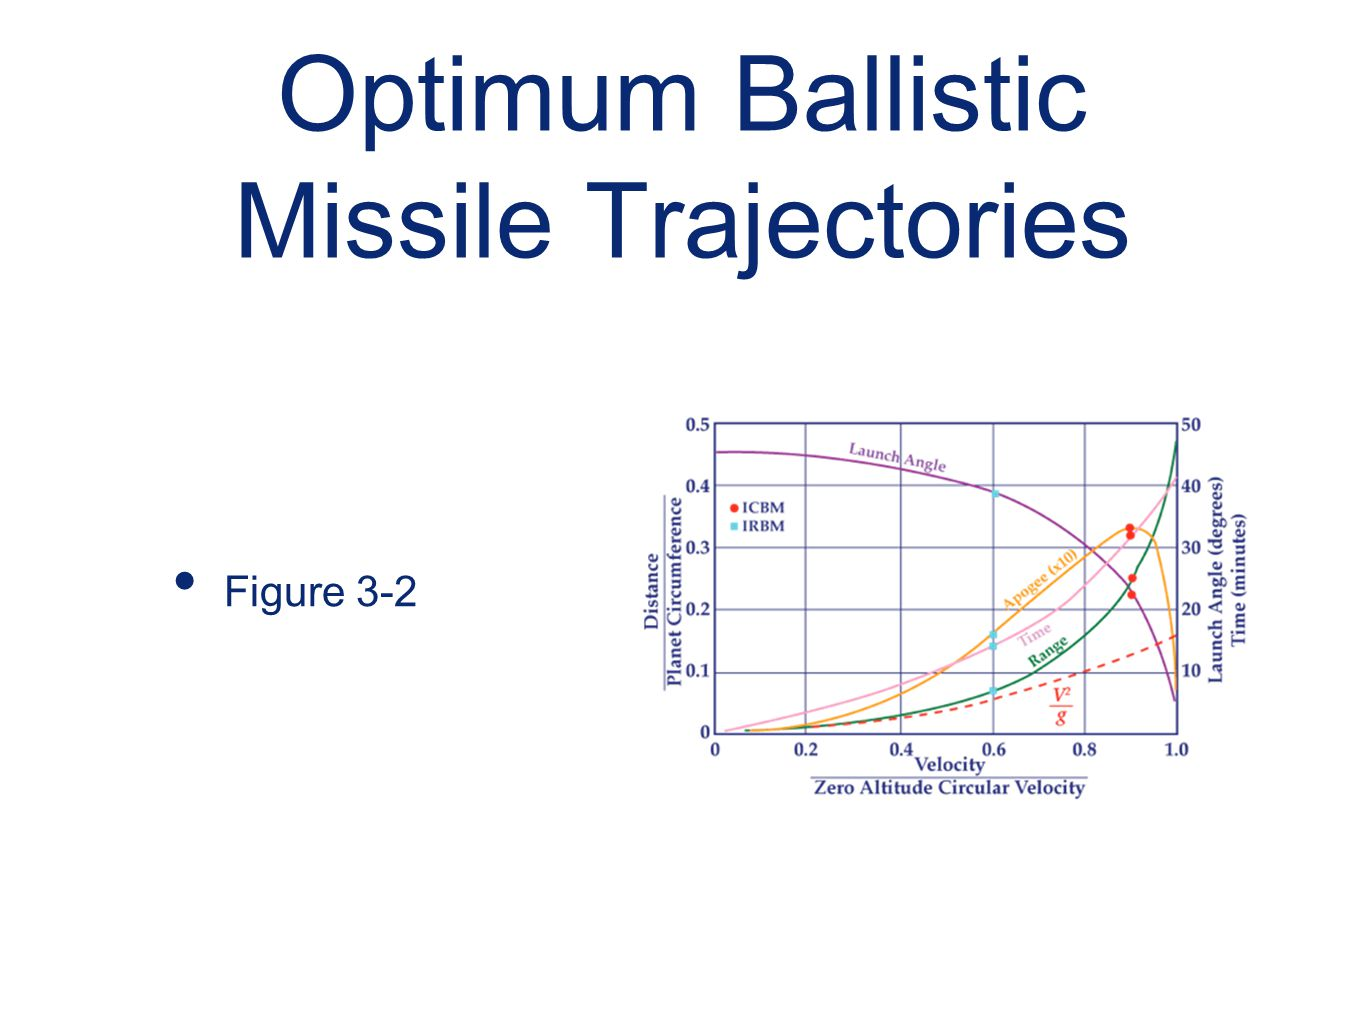 Optimum Ballistic Missile Trajectories Figure 3-2